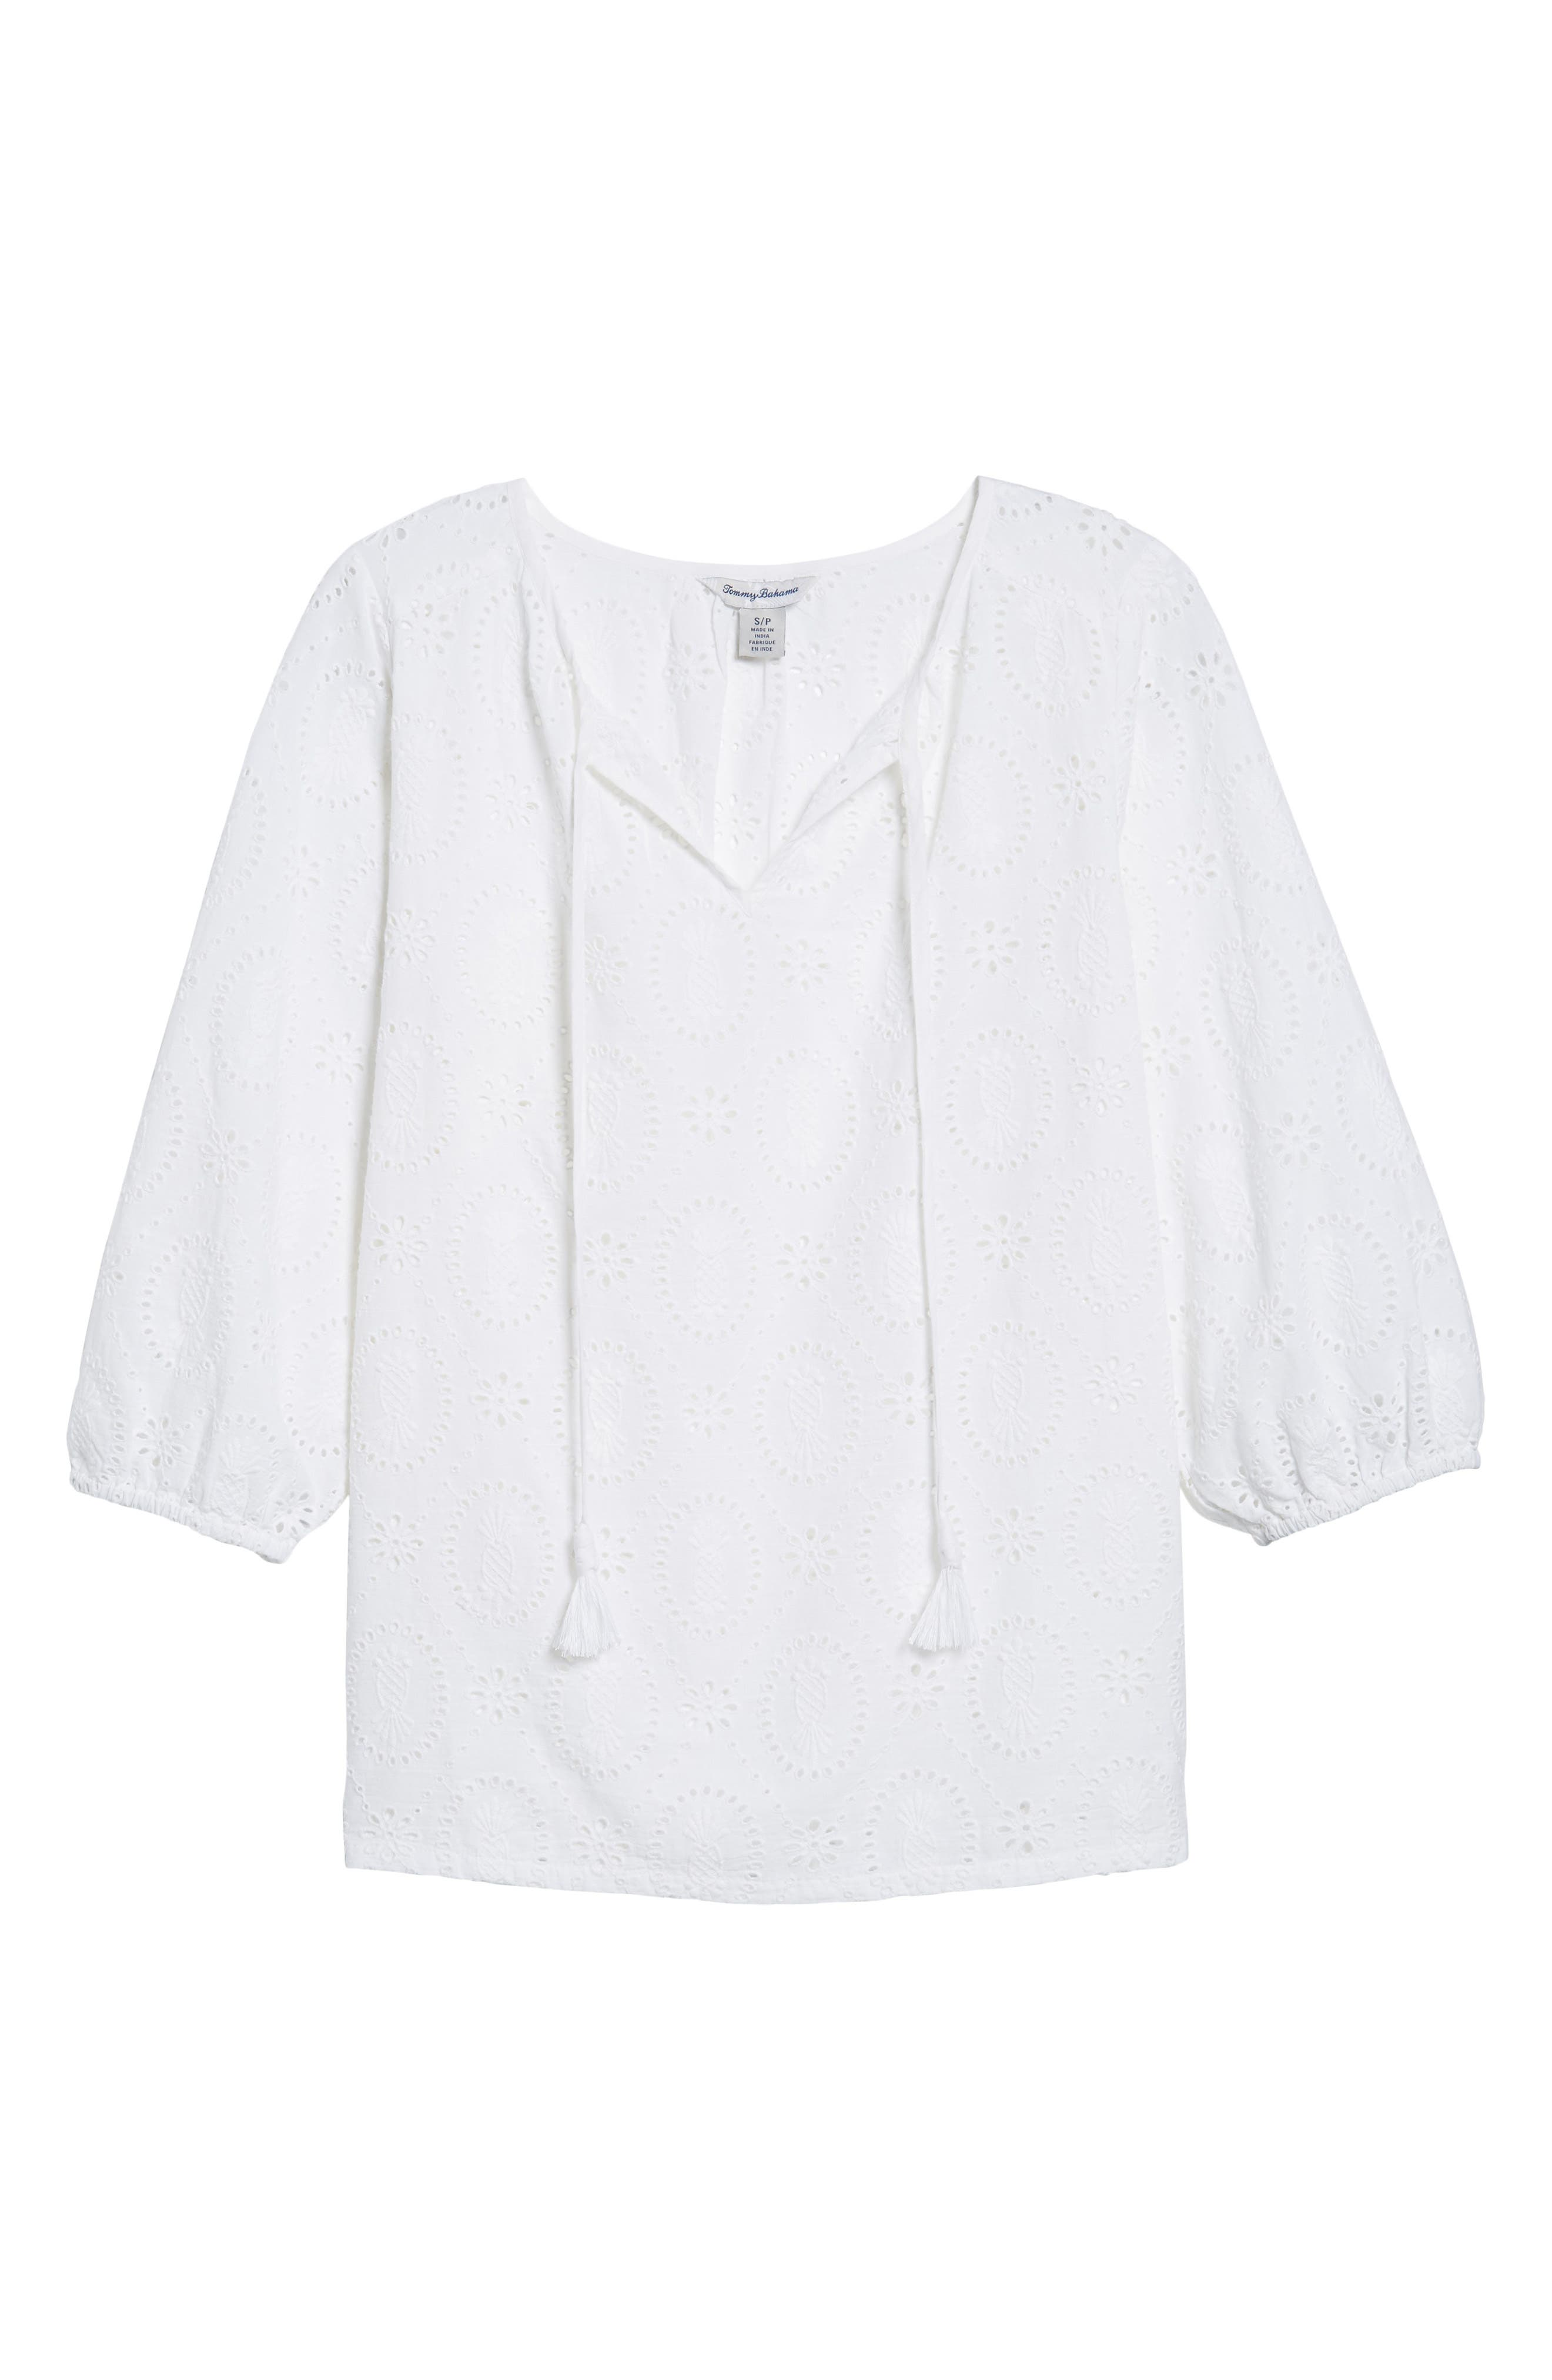 Pineapple Blossoms Tie Neck Blouse,                             Alternate thumbnail 6, color,                             White